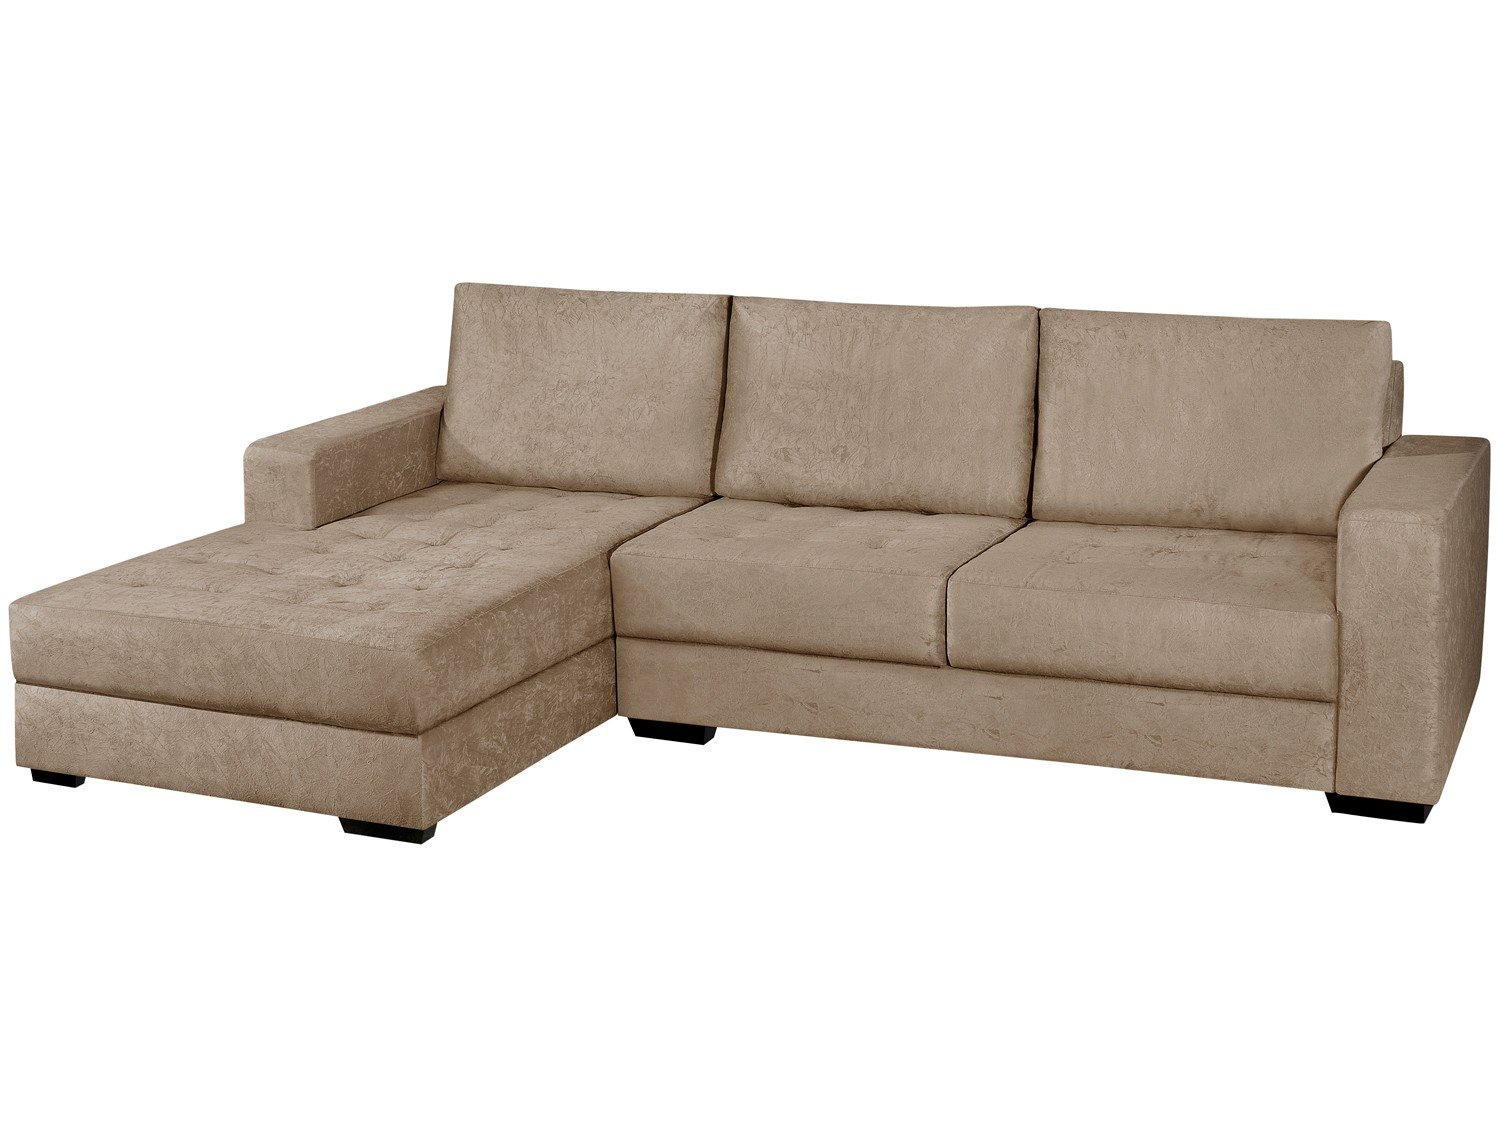 1f05d8e5c Sof chaise 2 lugares suede n pole american comfort for Sofa 02 lugares  retratil